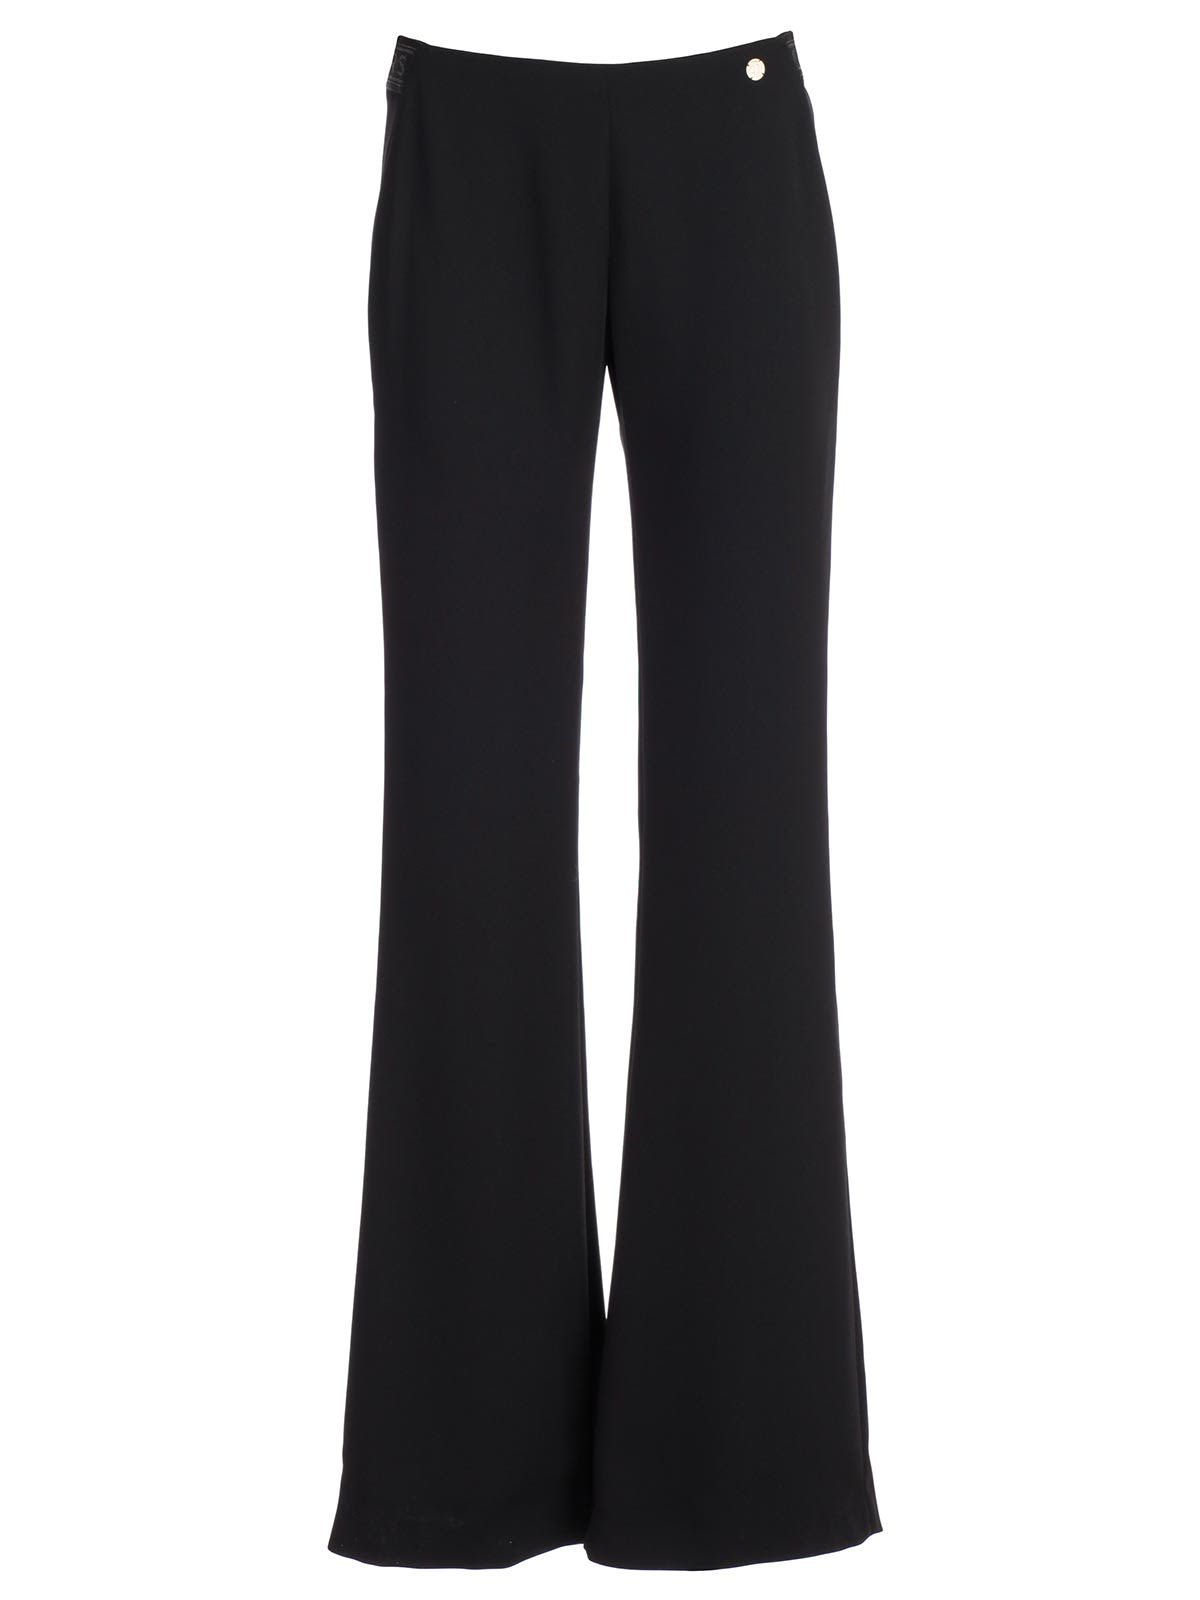 VERSACE FLARED TROUSERS,10797320